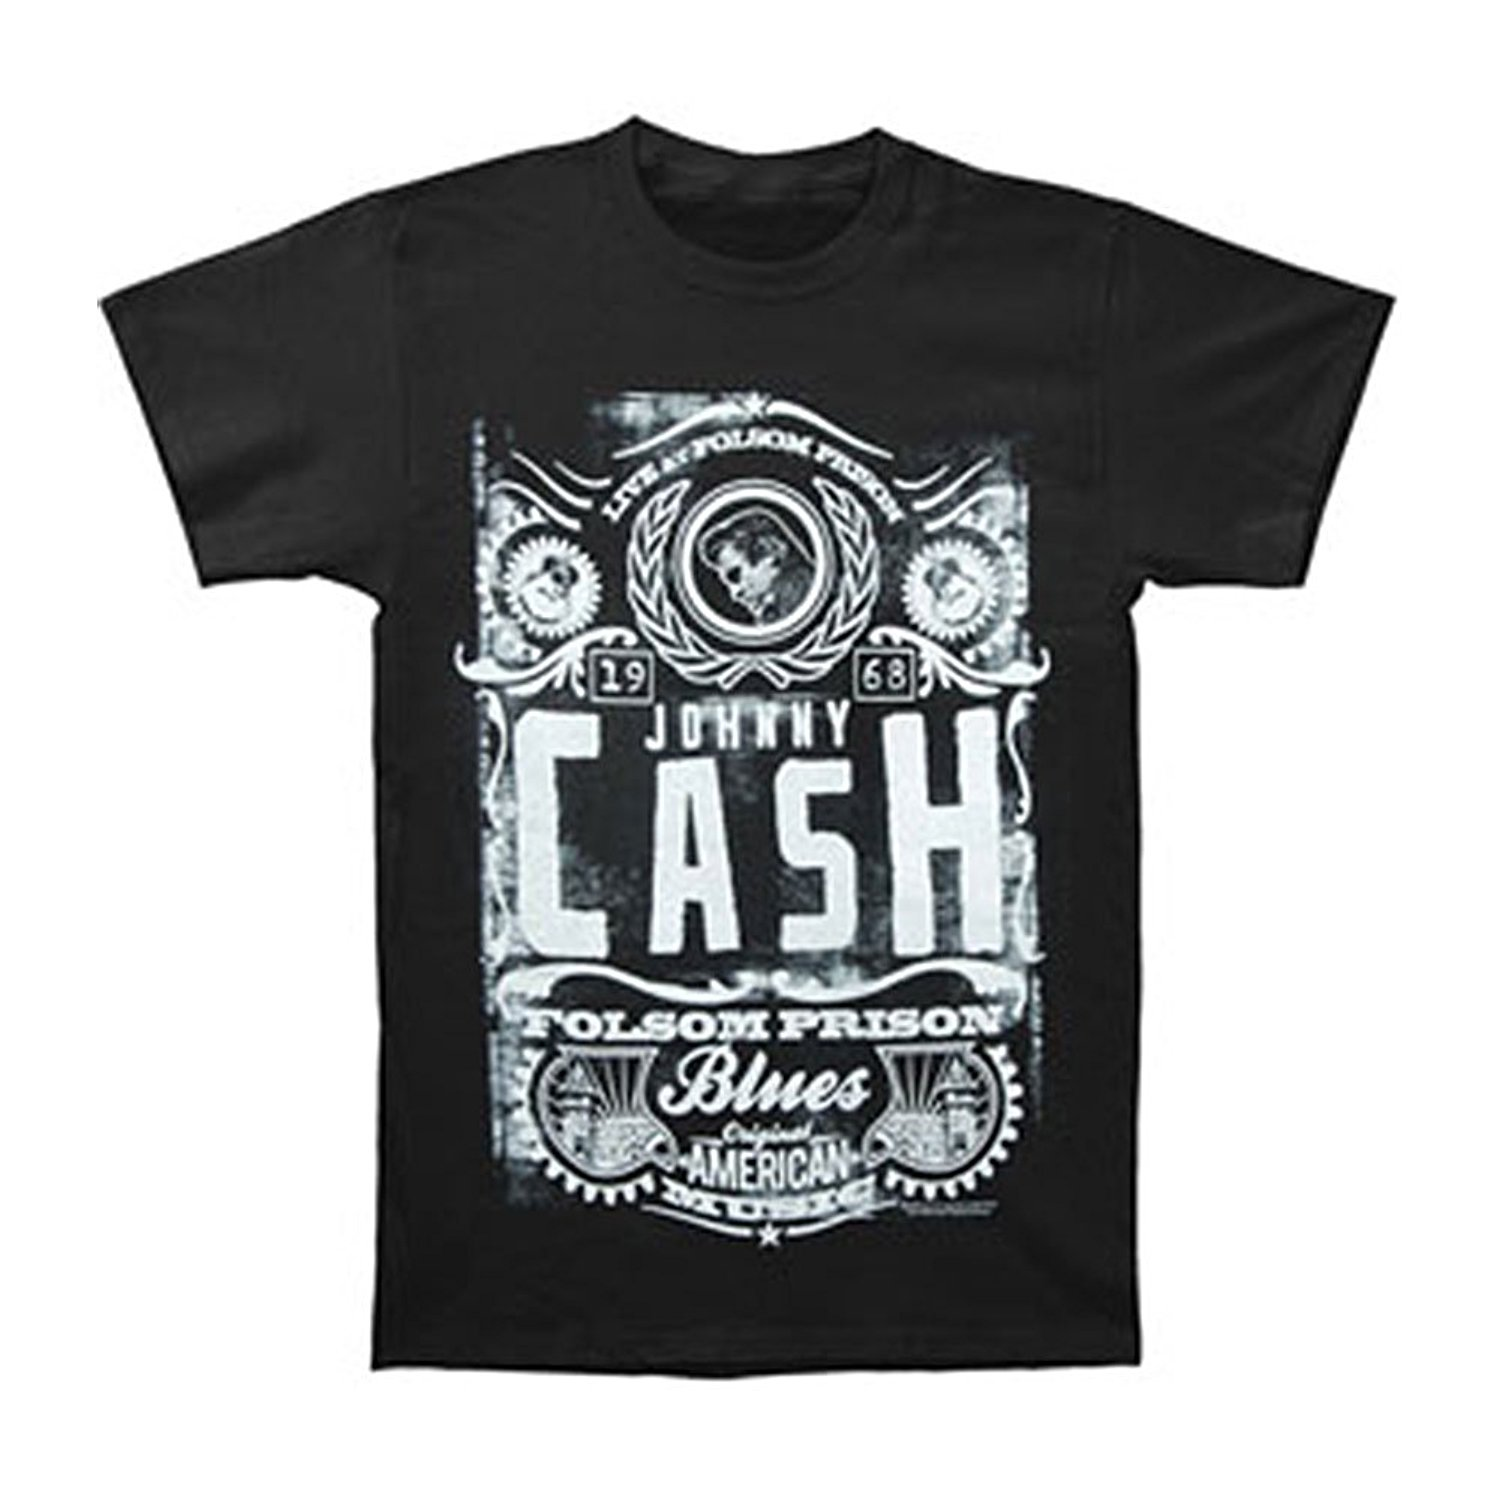 Johnny Cash Mens Live At Folsom 1968 T-shirt Black MenS T-Shirts Summer Style Fashion Swag Men T Shirts Top Tee Plus Size ...